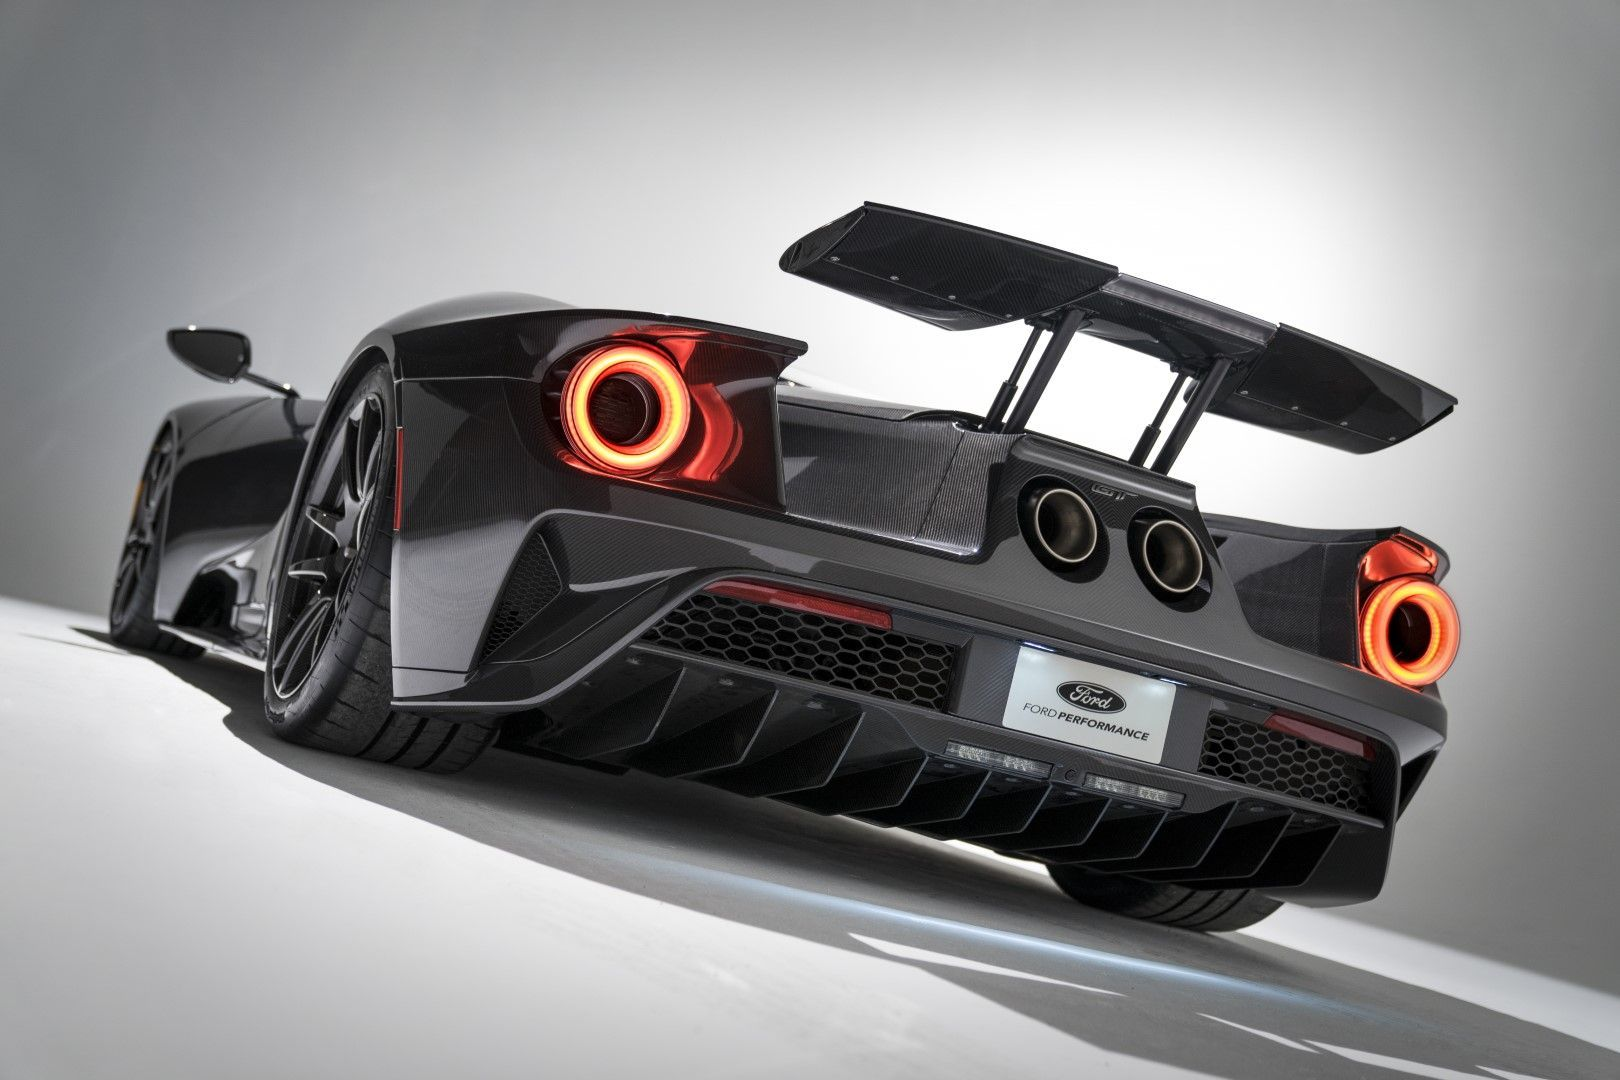 2020 Ford Gt Liquid Carbon An Optional Edition With The Complete